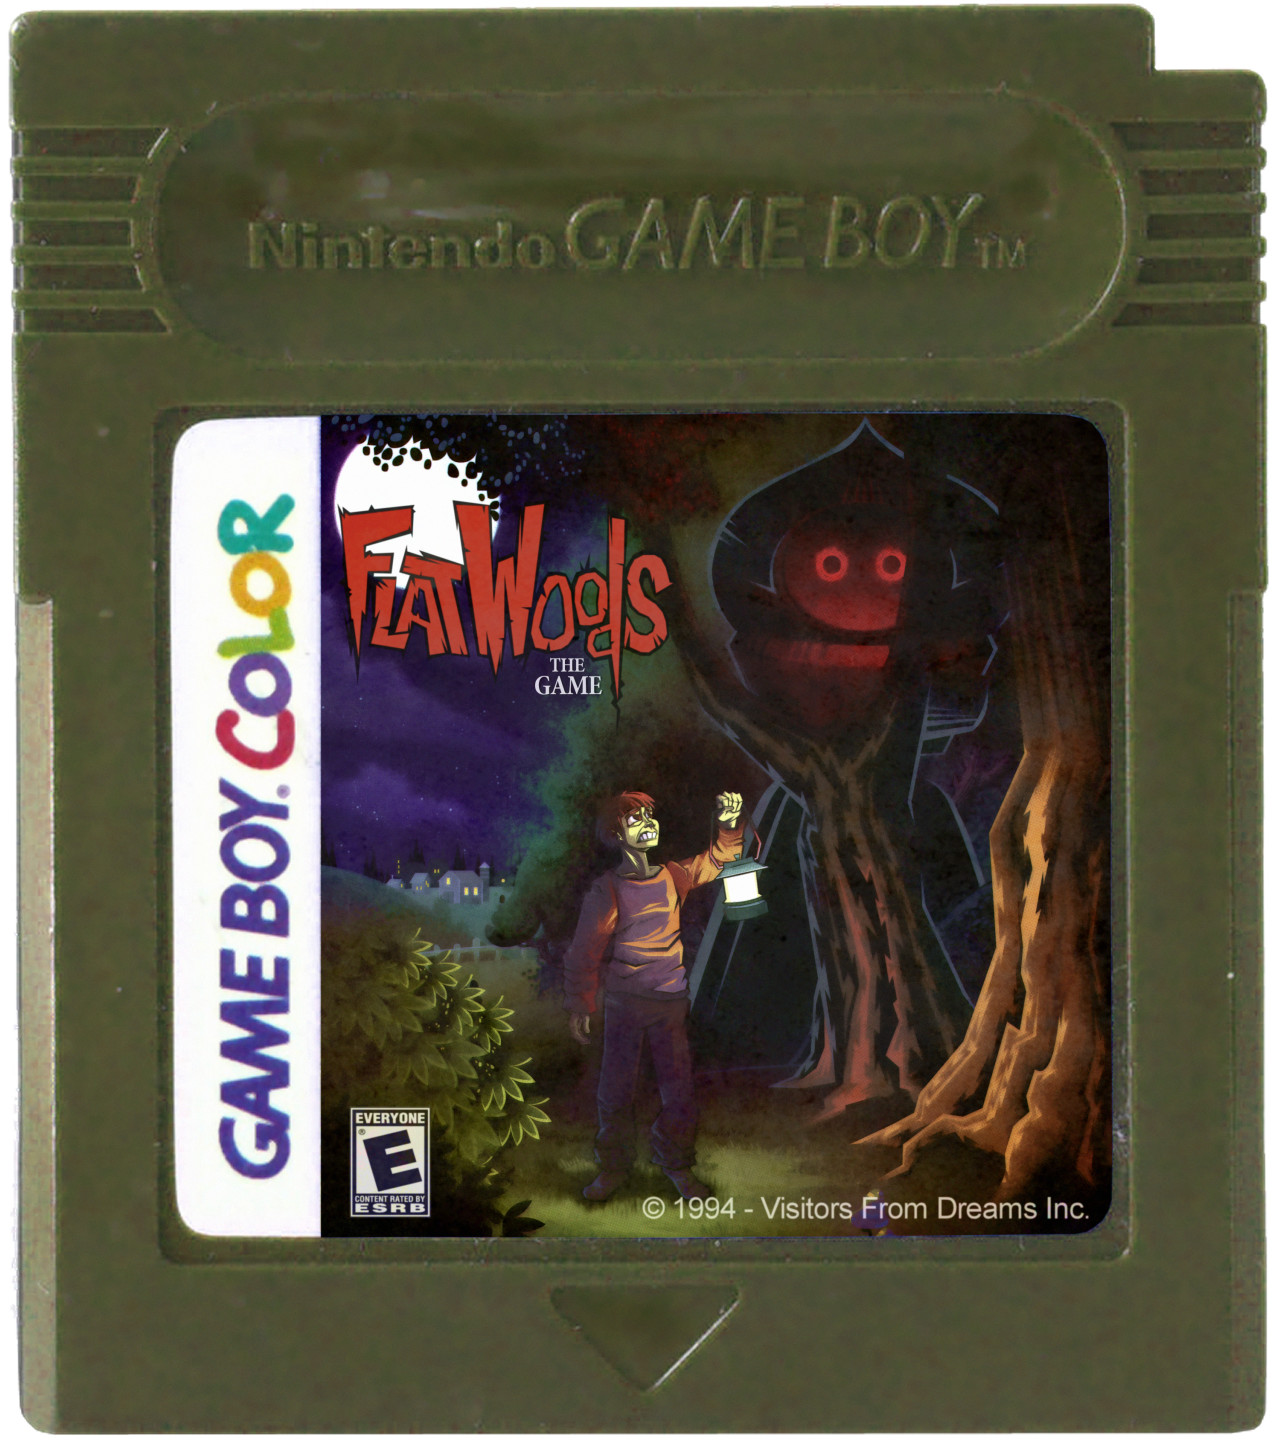 mock-up of cartridge with cover art and logo